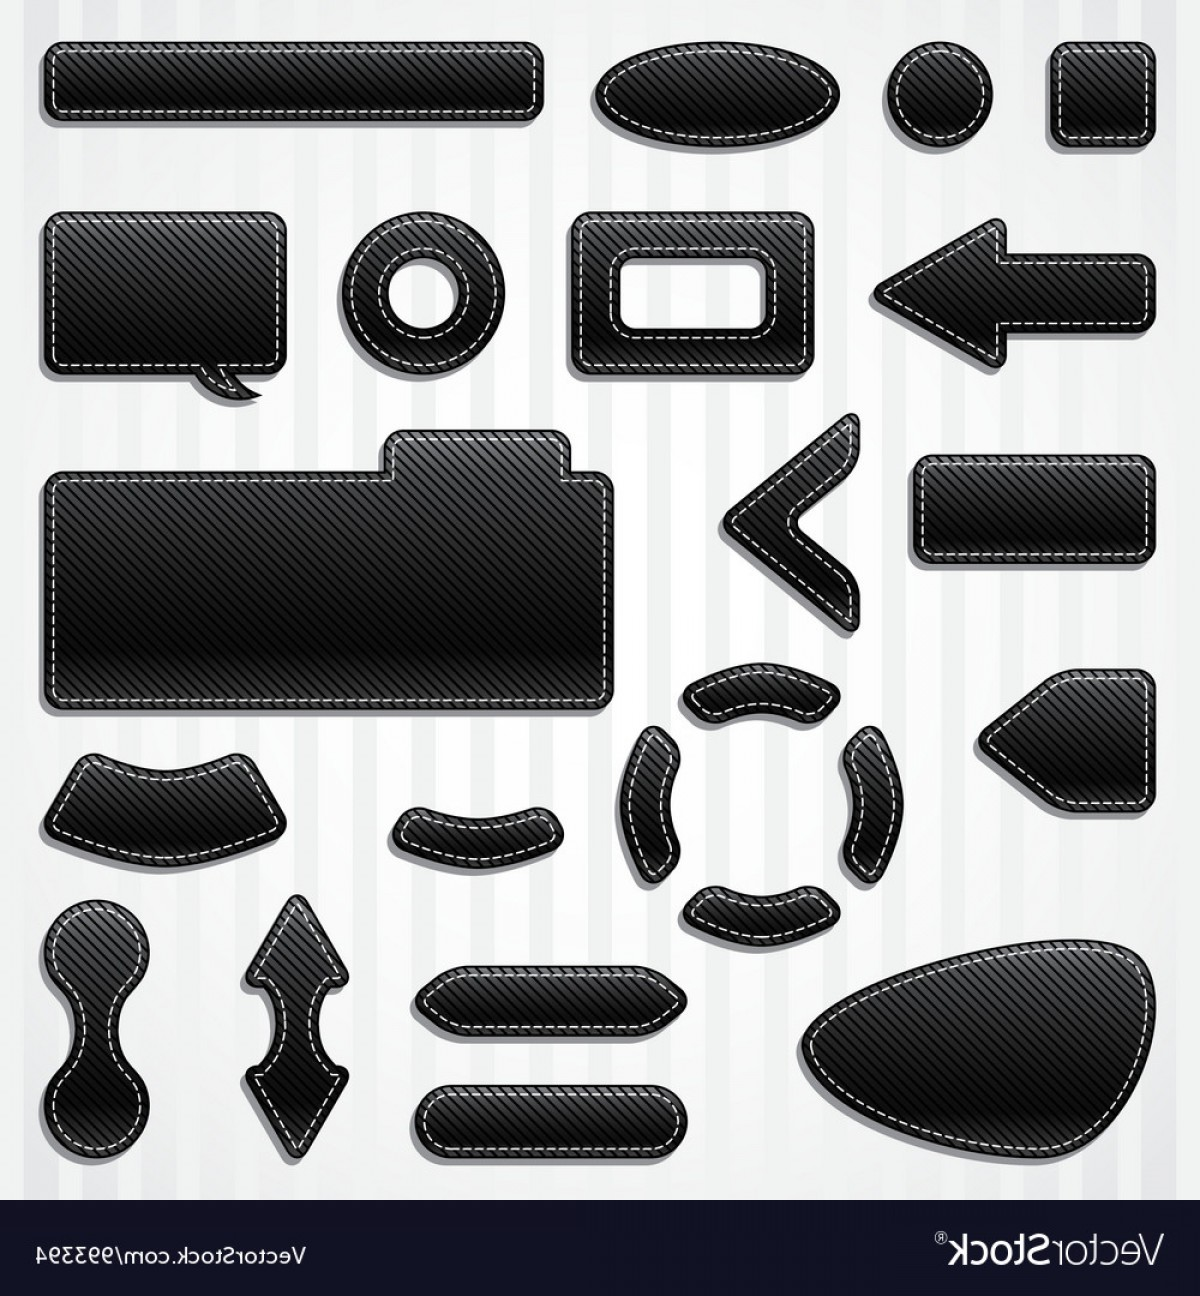 Vectors Buttons And Menus: Set Of Icons Buttons And Menus For Websites In Vector